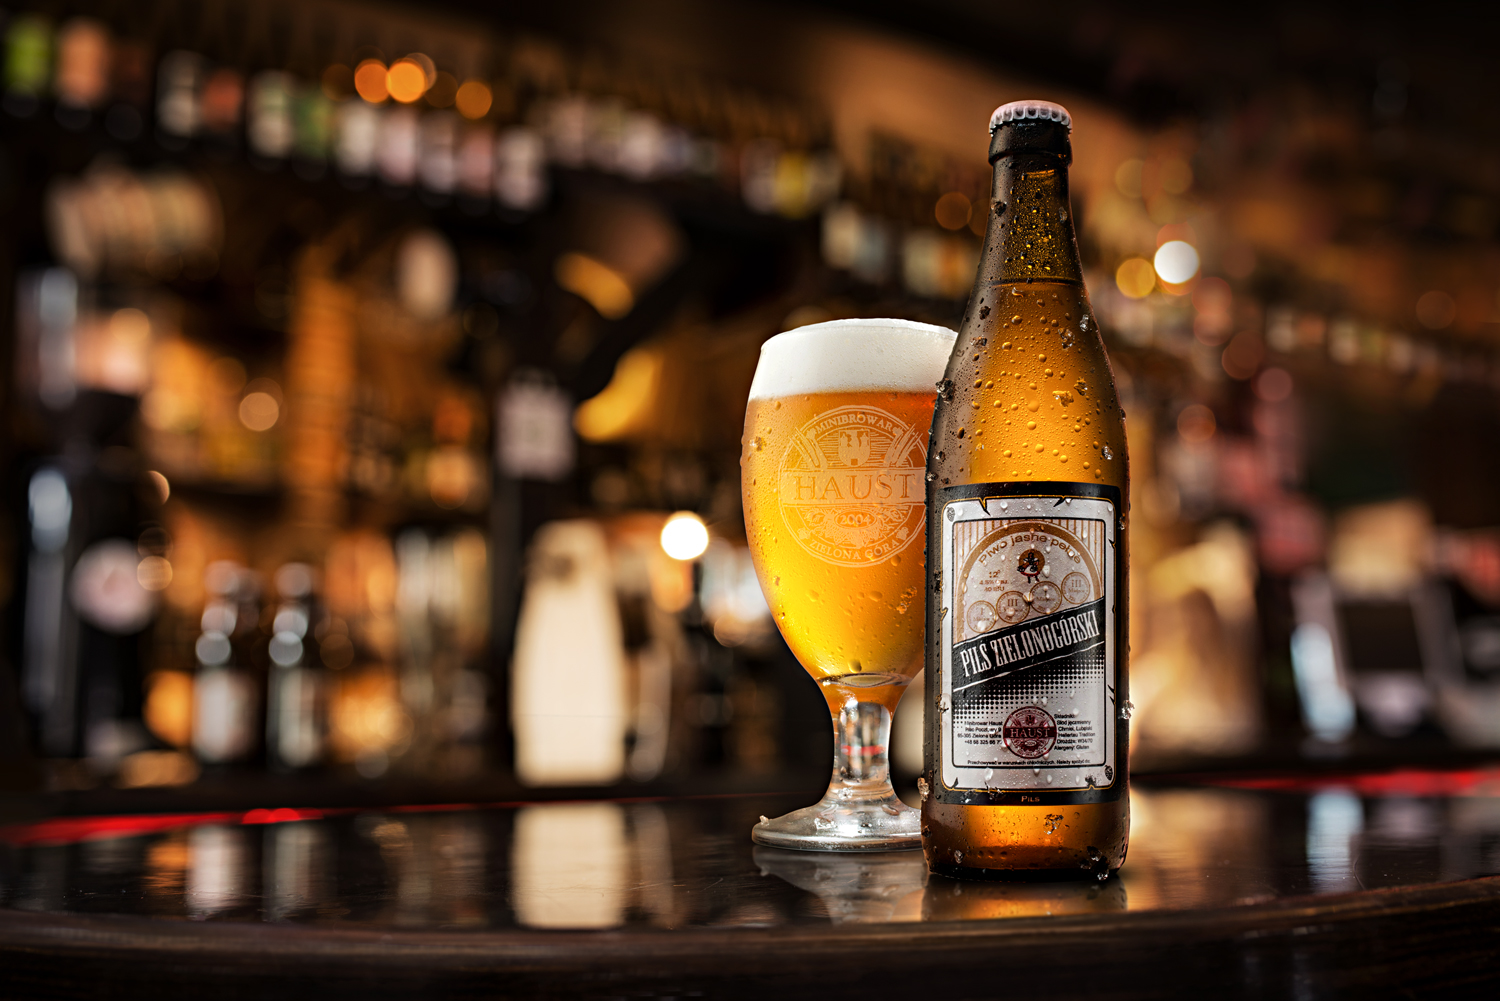 lettstudio_beverage_photography_haust_beer_editorial.jpg